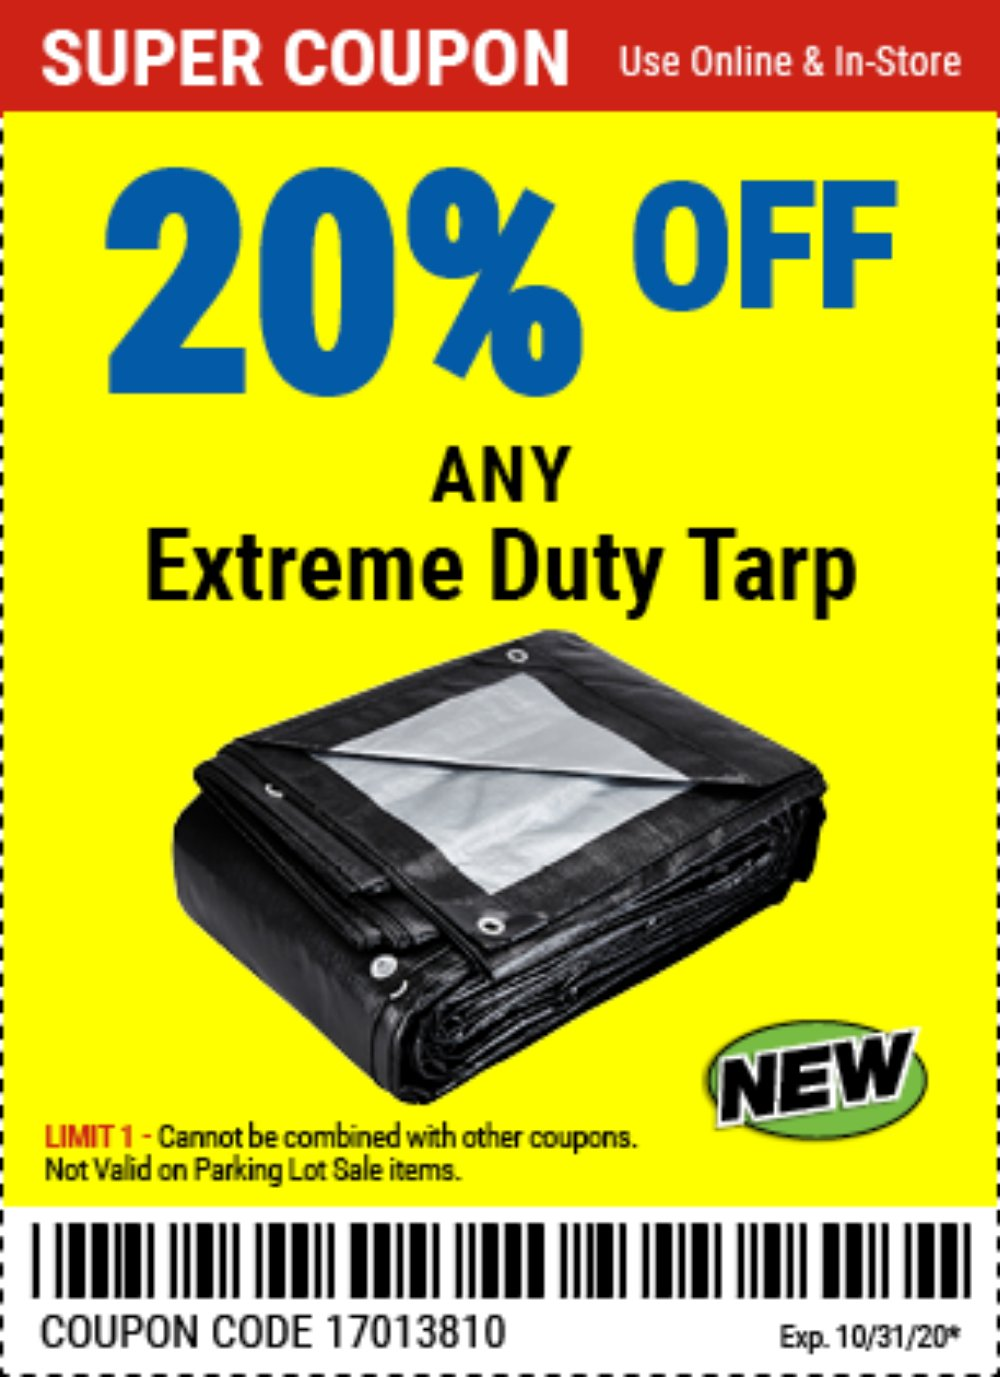 Harbor Freight Coupon, HF Coupons - 20% off Any Extreme Tarp